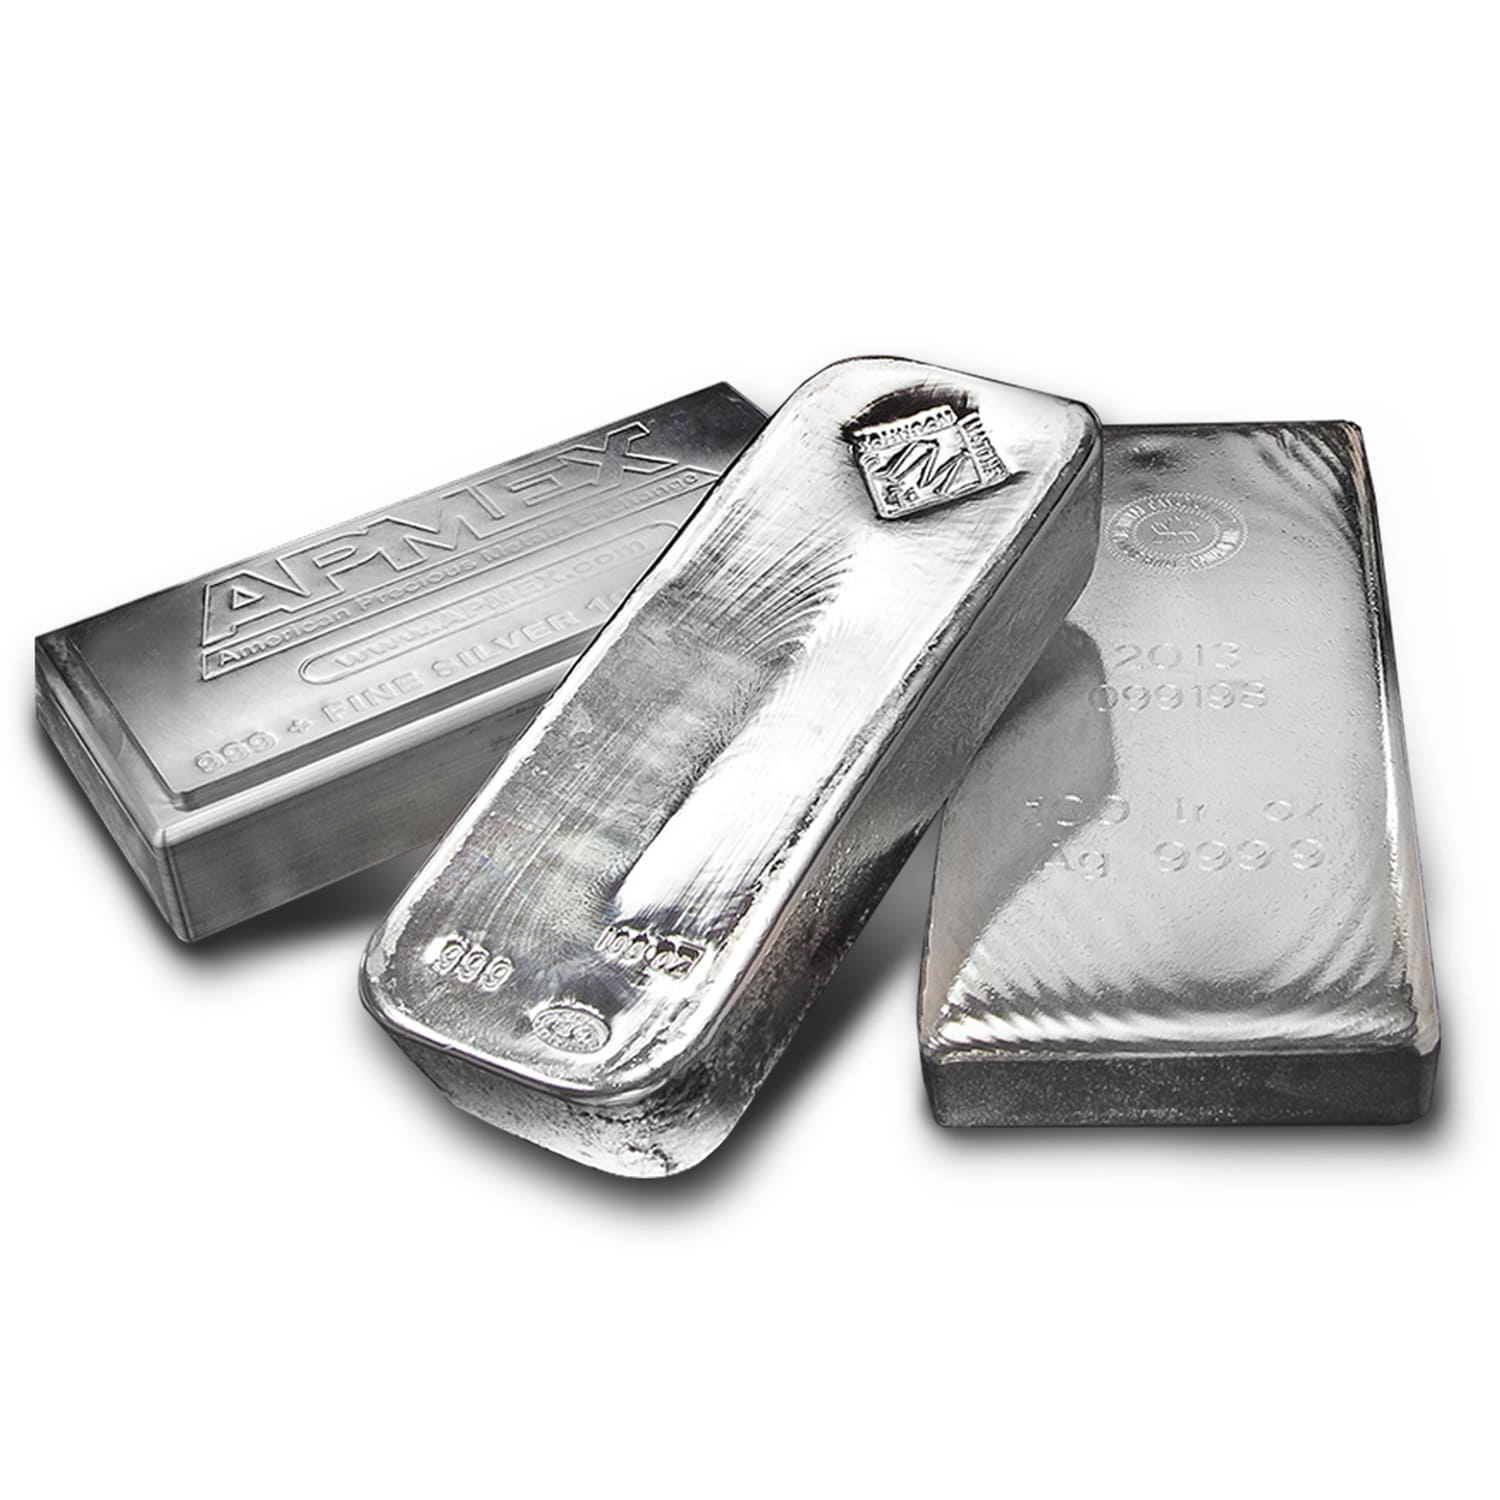 98.05 oz Silver Bar - Secondary Market